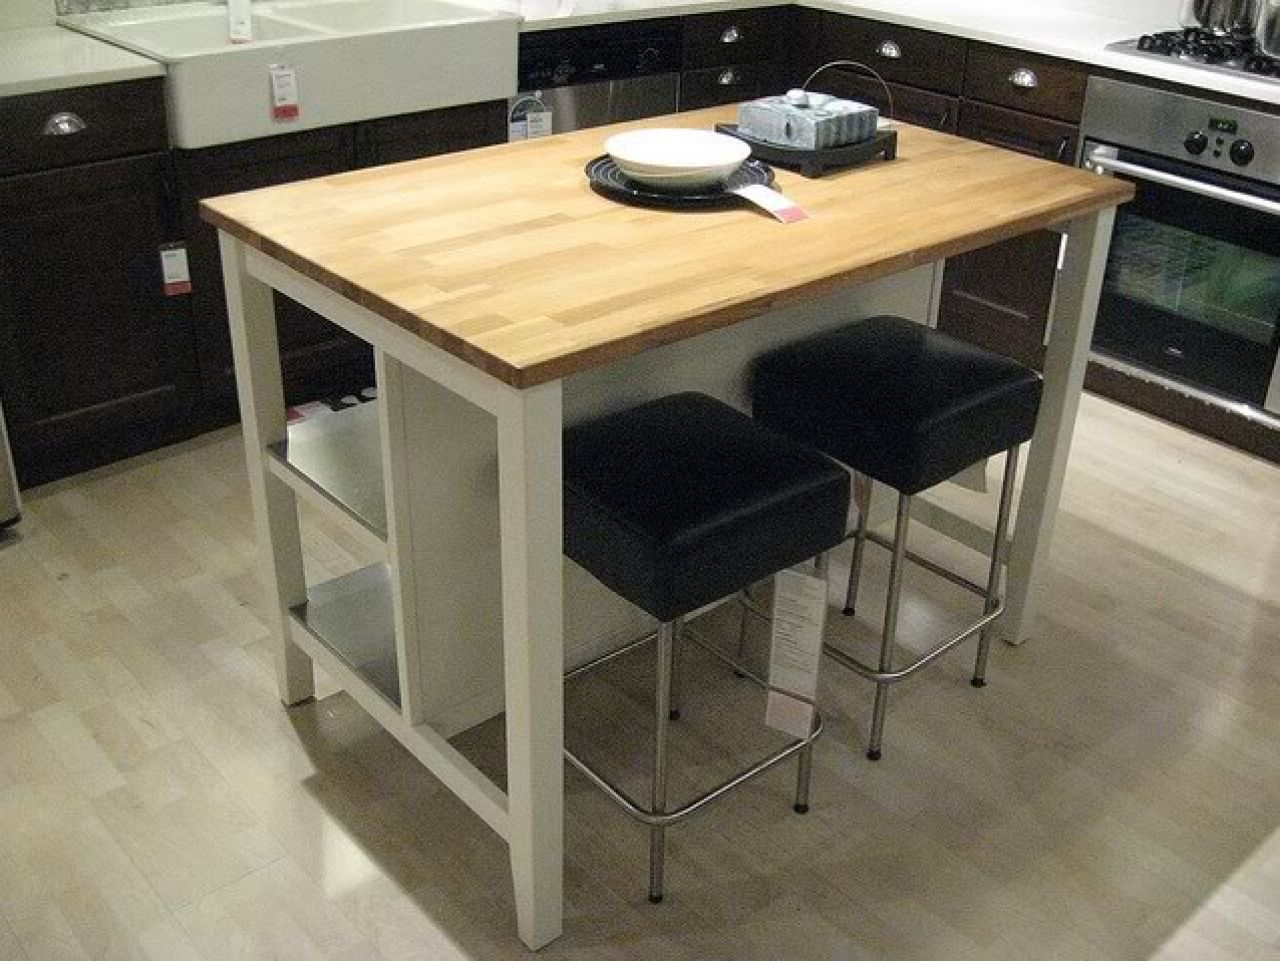 Best Island For Kitchen Ikea Mdfyw Com Home Projects 400 x 300